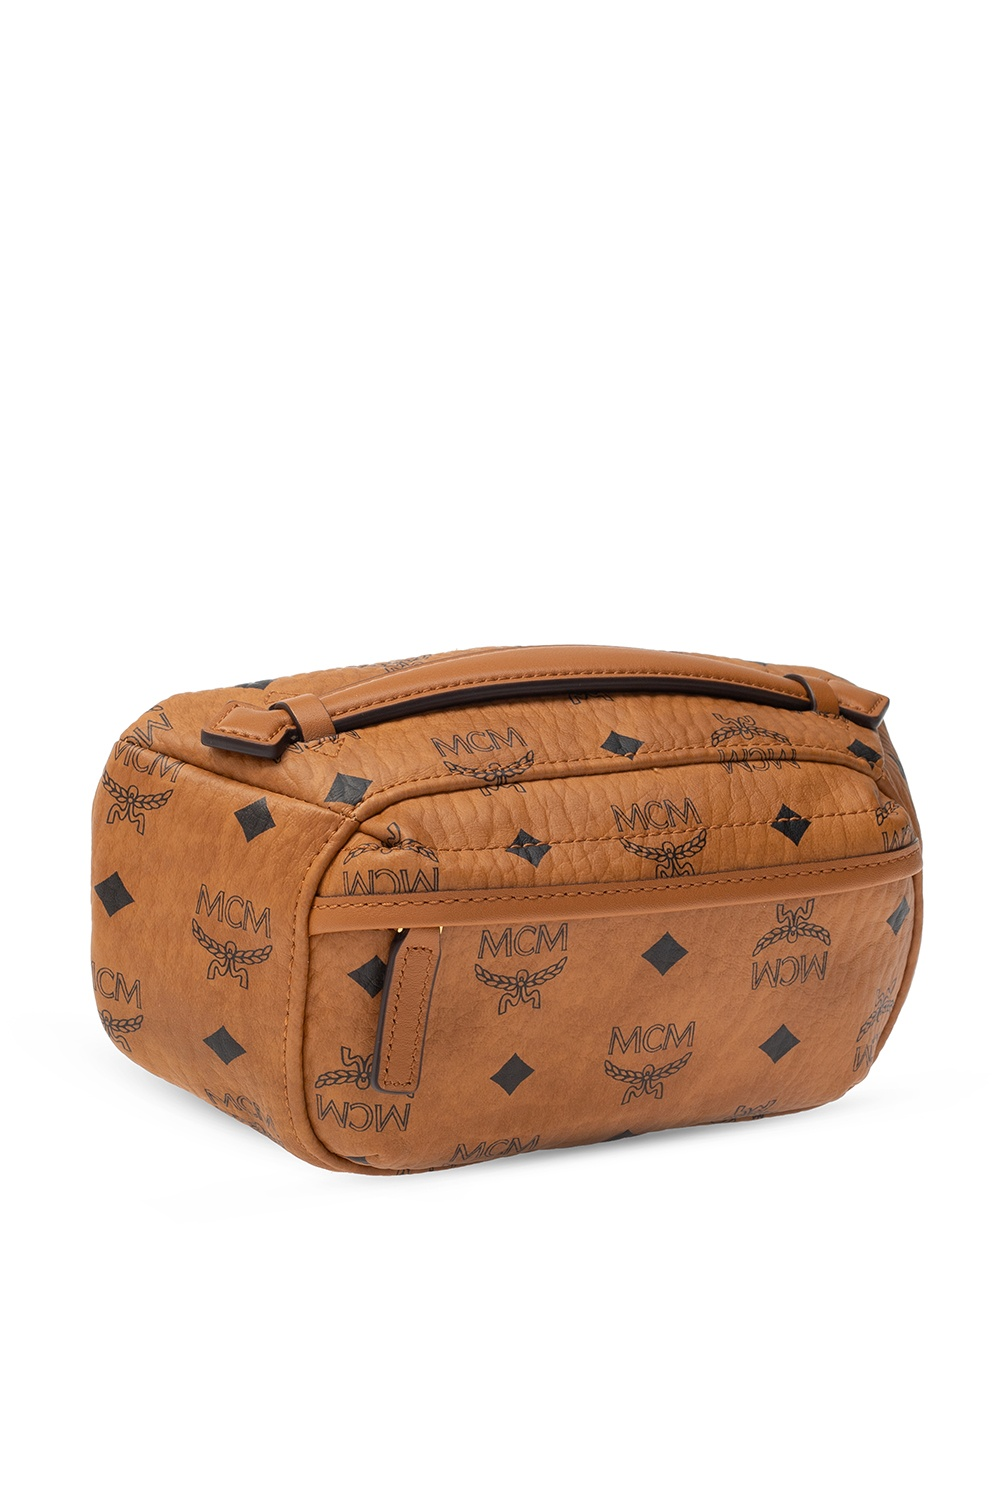 MCM Branded belt bag